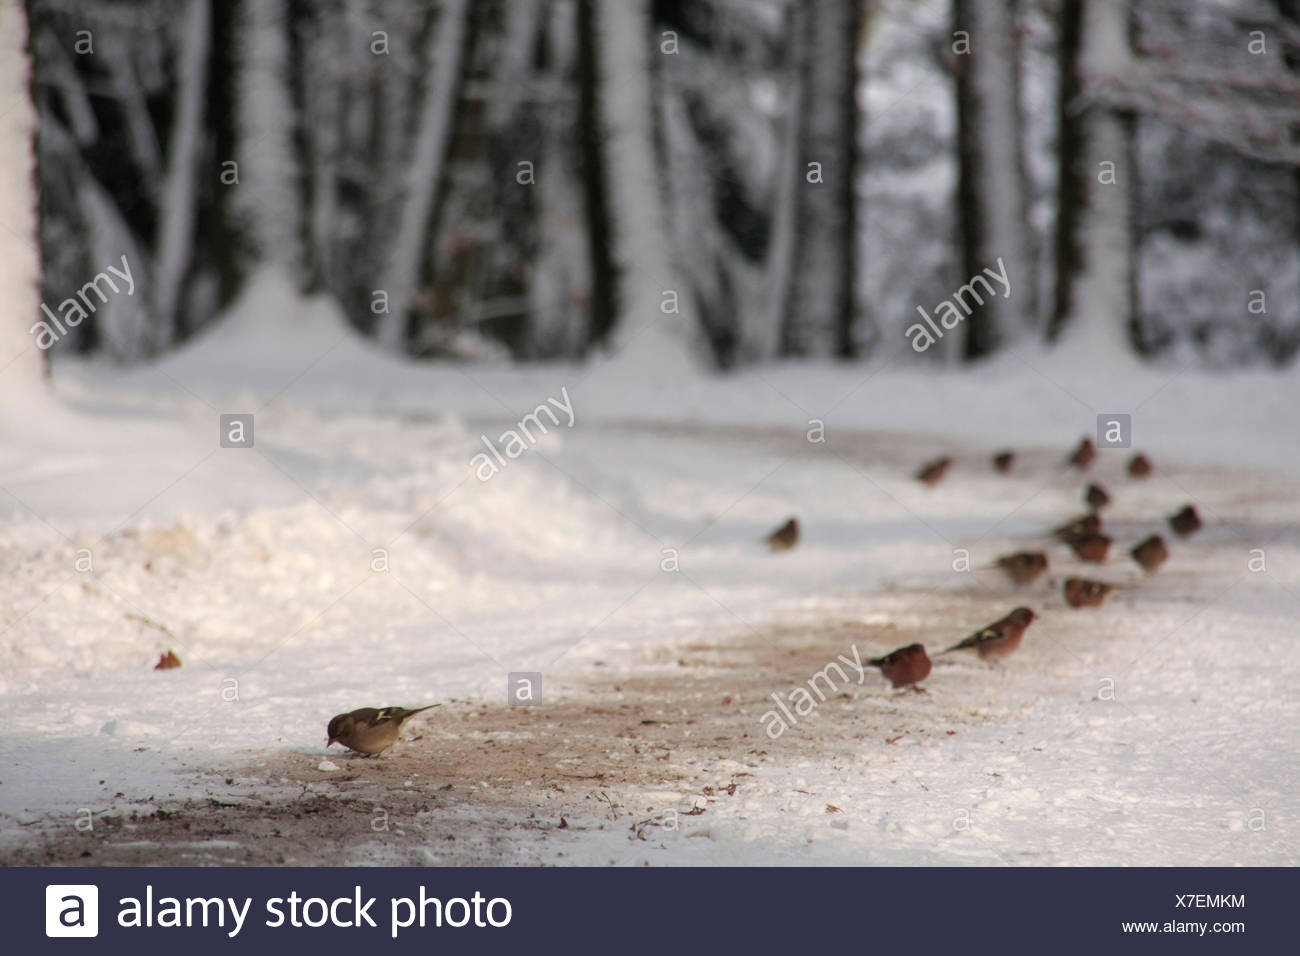 Chaffinches foraging at a forest lane, snow. - Stock Image